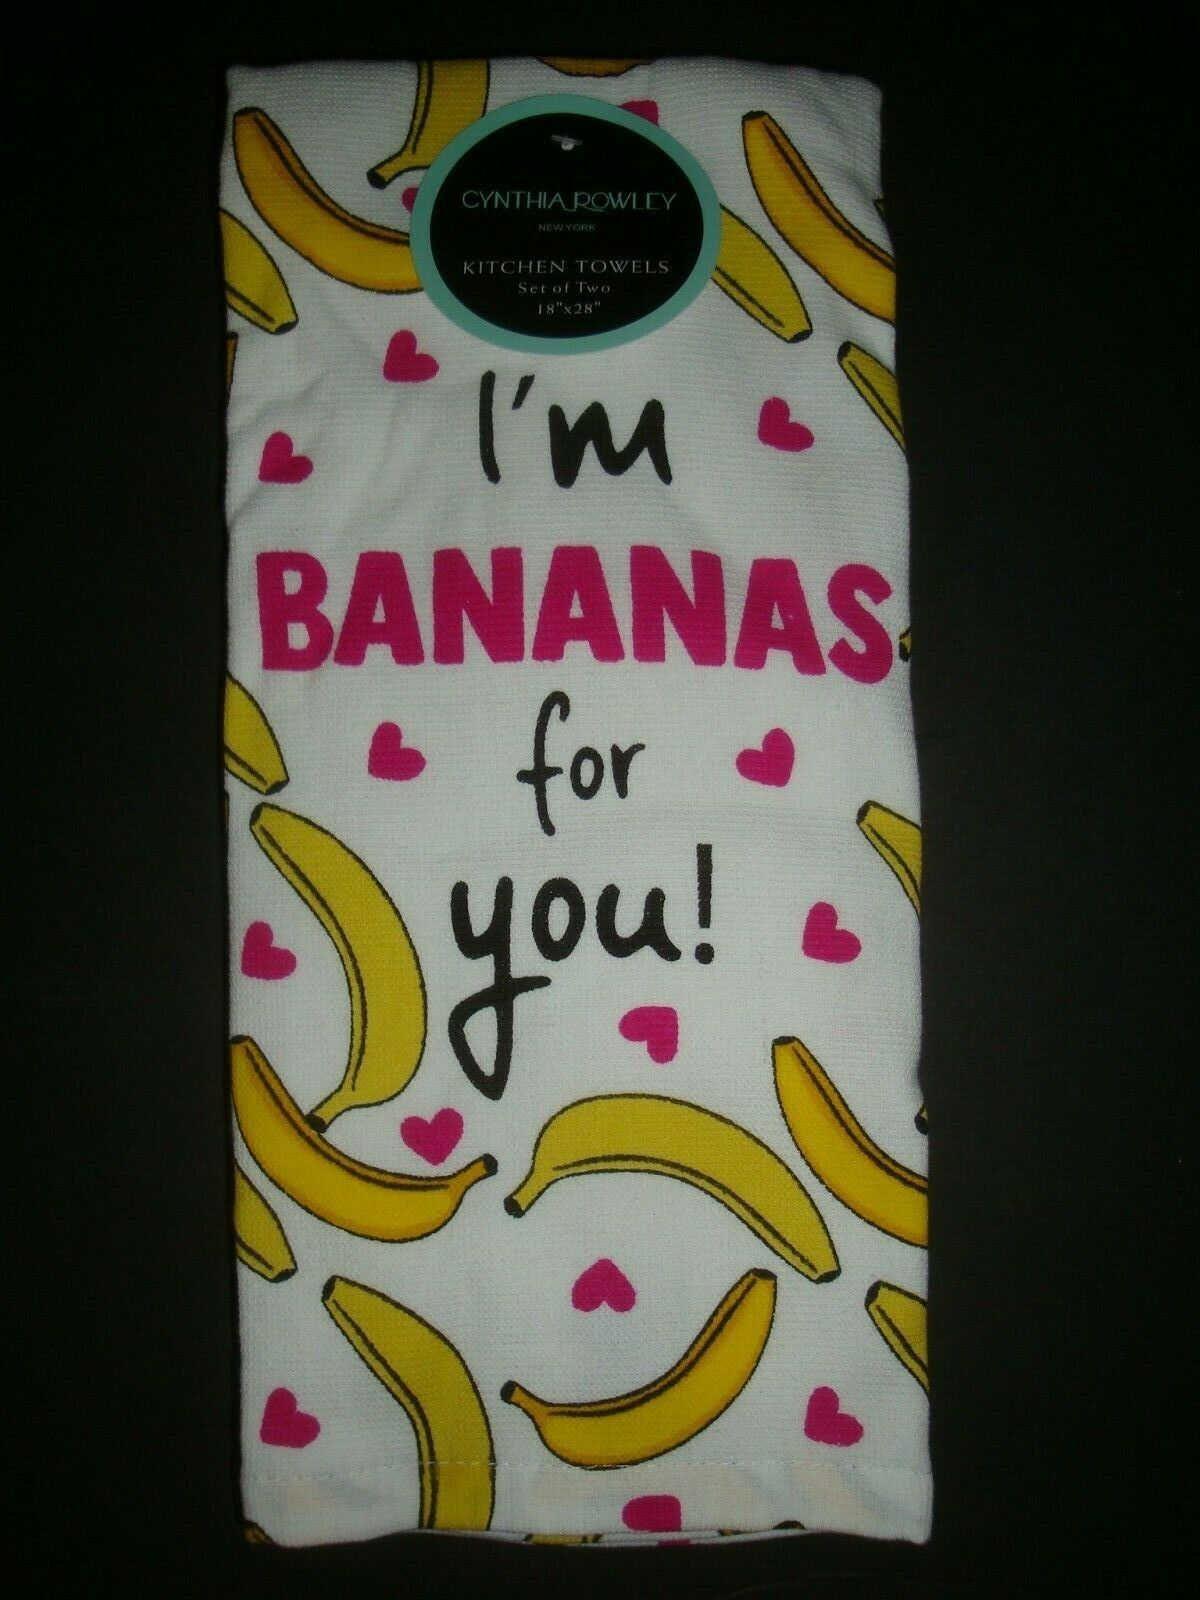 New Cynthia Rowley Set of 2 Kitchen Towels 100% Cotton I'm Bananas for You!